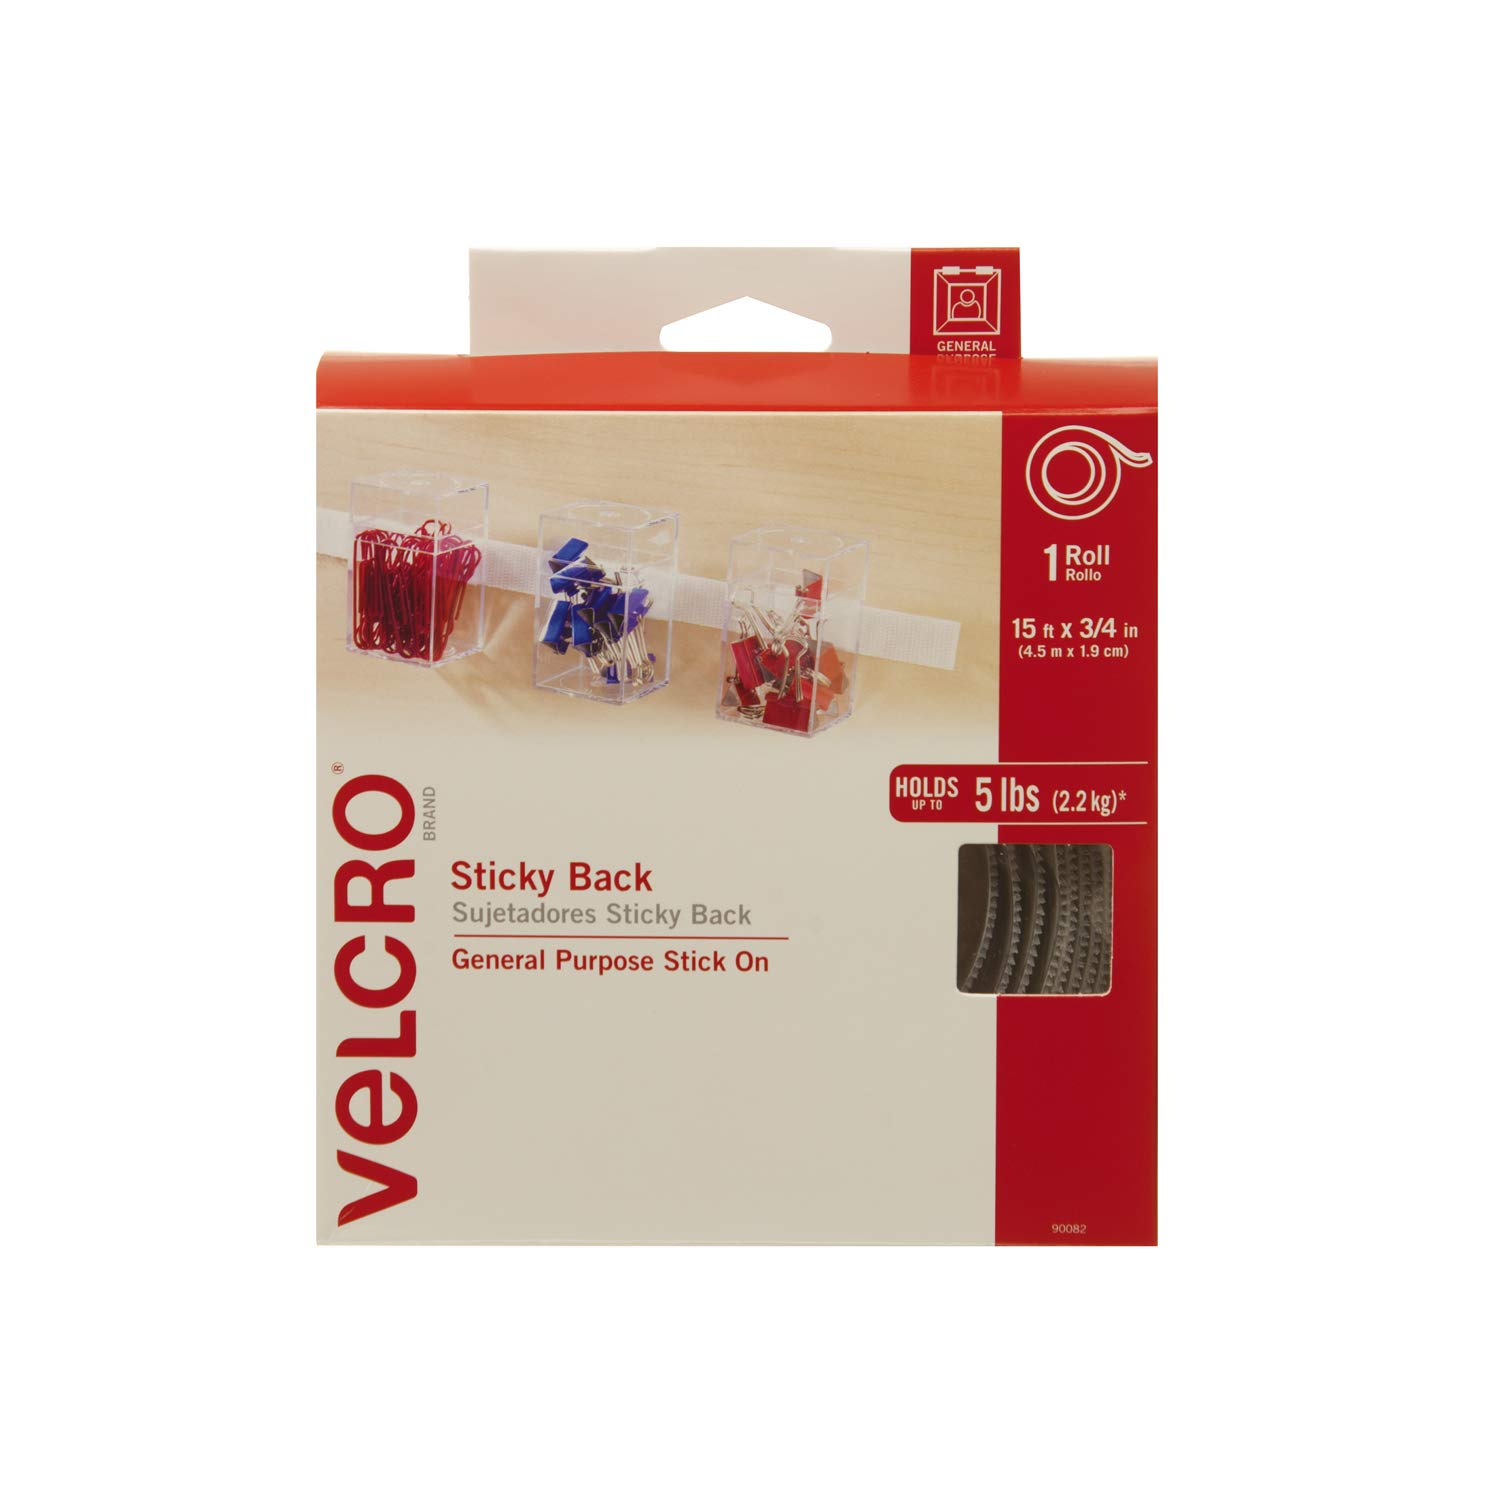 VELCRO Brand Sticky Back | Hook and Loop Fasteners | Keep Things Organized and Connected | 15ft x 3/4in | Tape,Red 90085